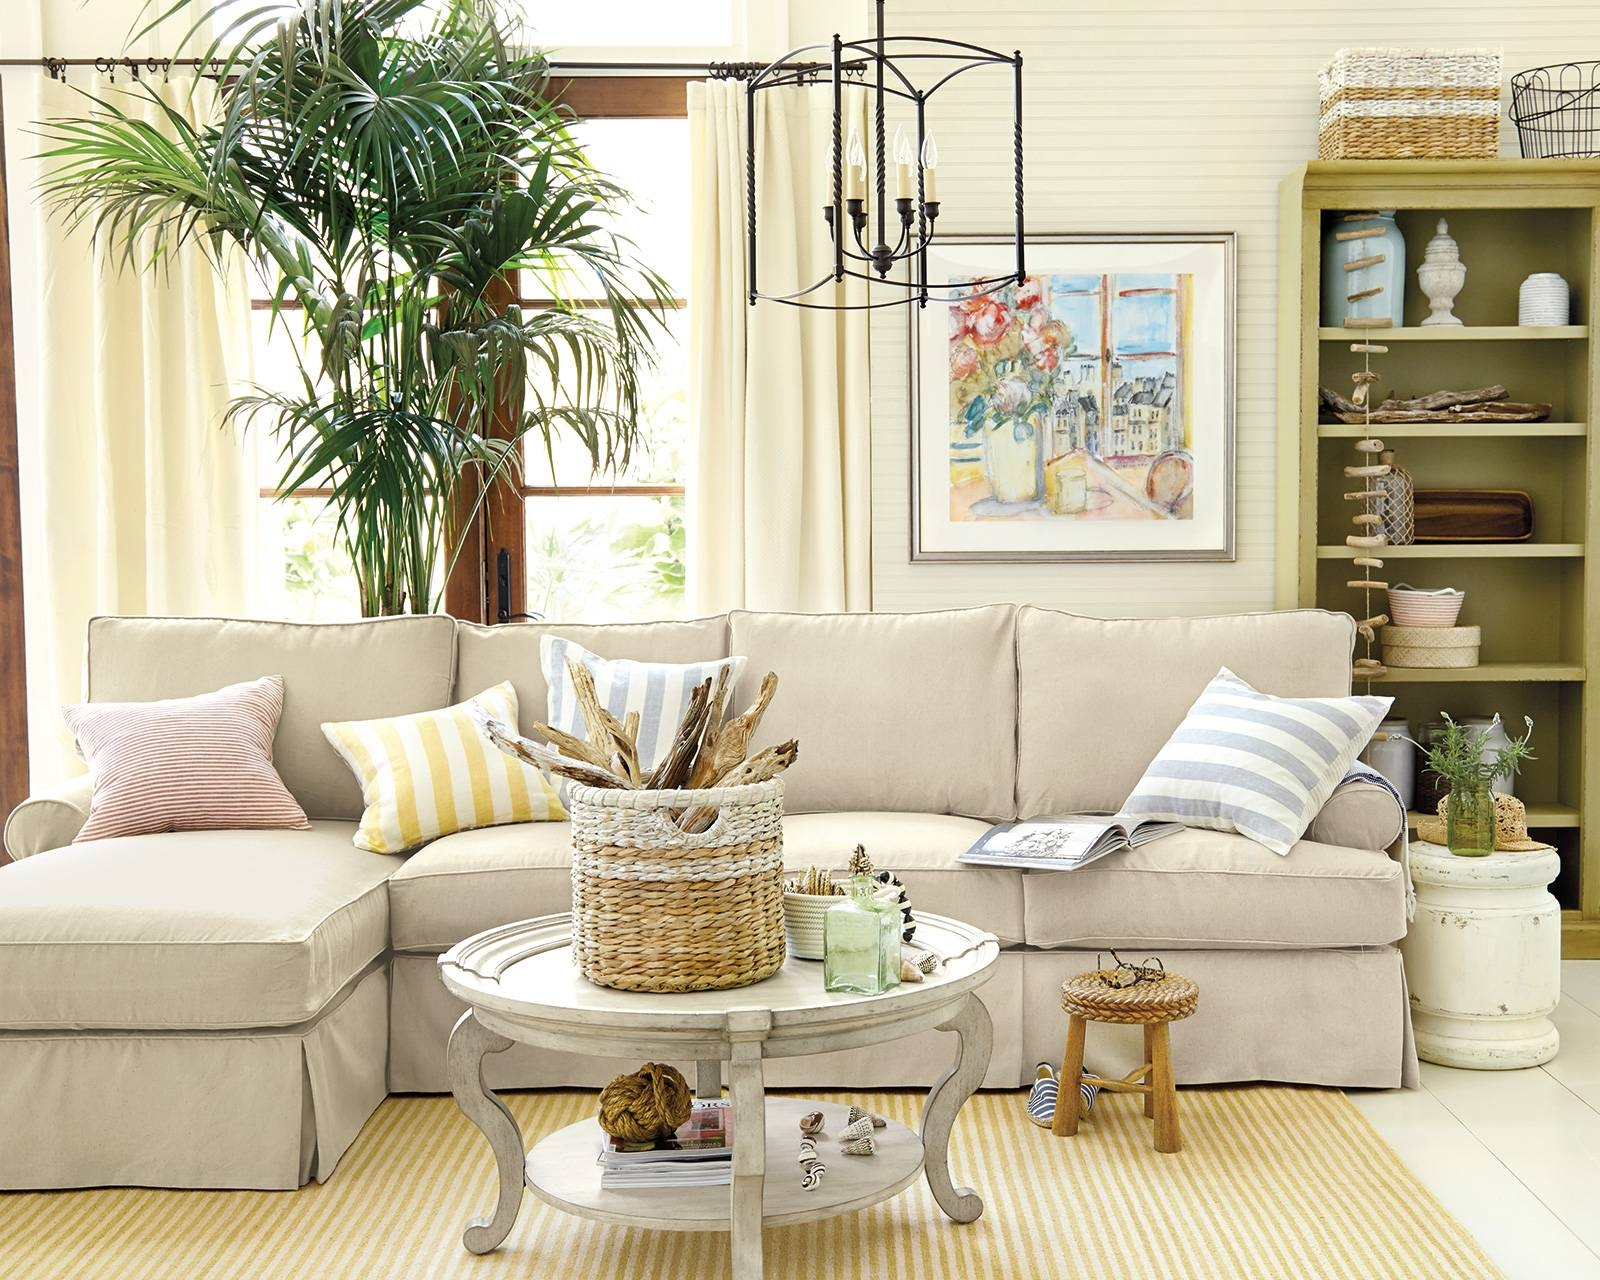 How To Match A Coffee Table To Your Sectional - How To Decorate pertaining to Coffee Table for Sectional Sofa With Chaise (Image 18 of 30)